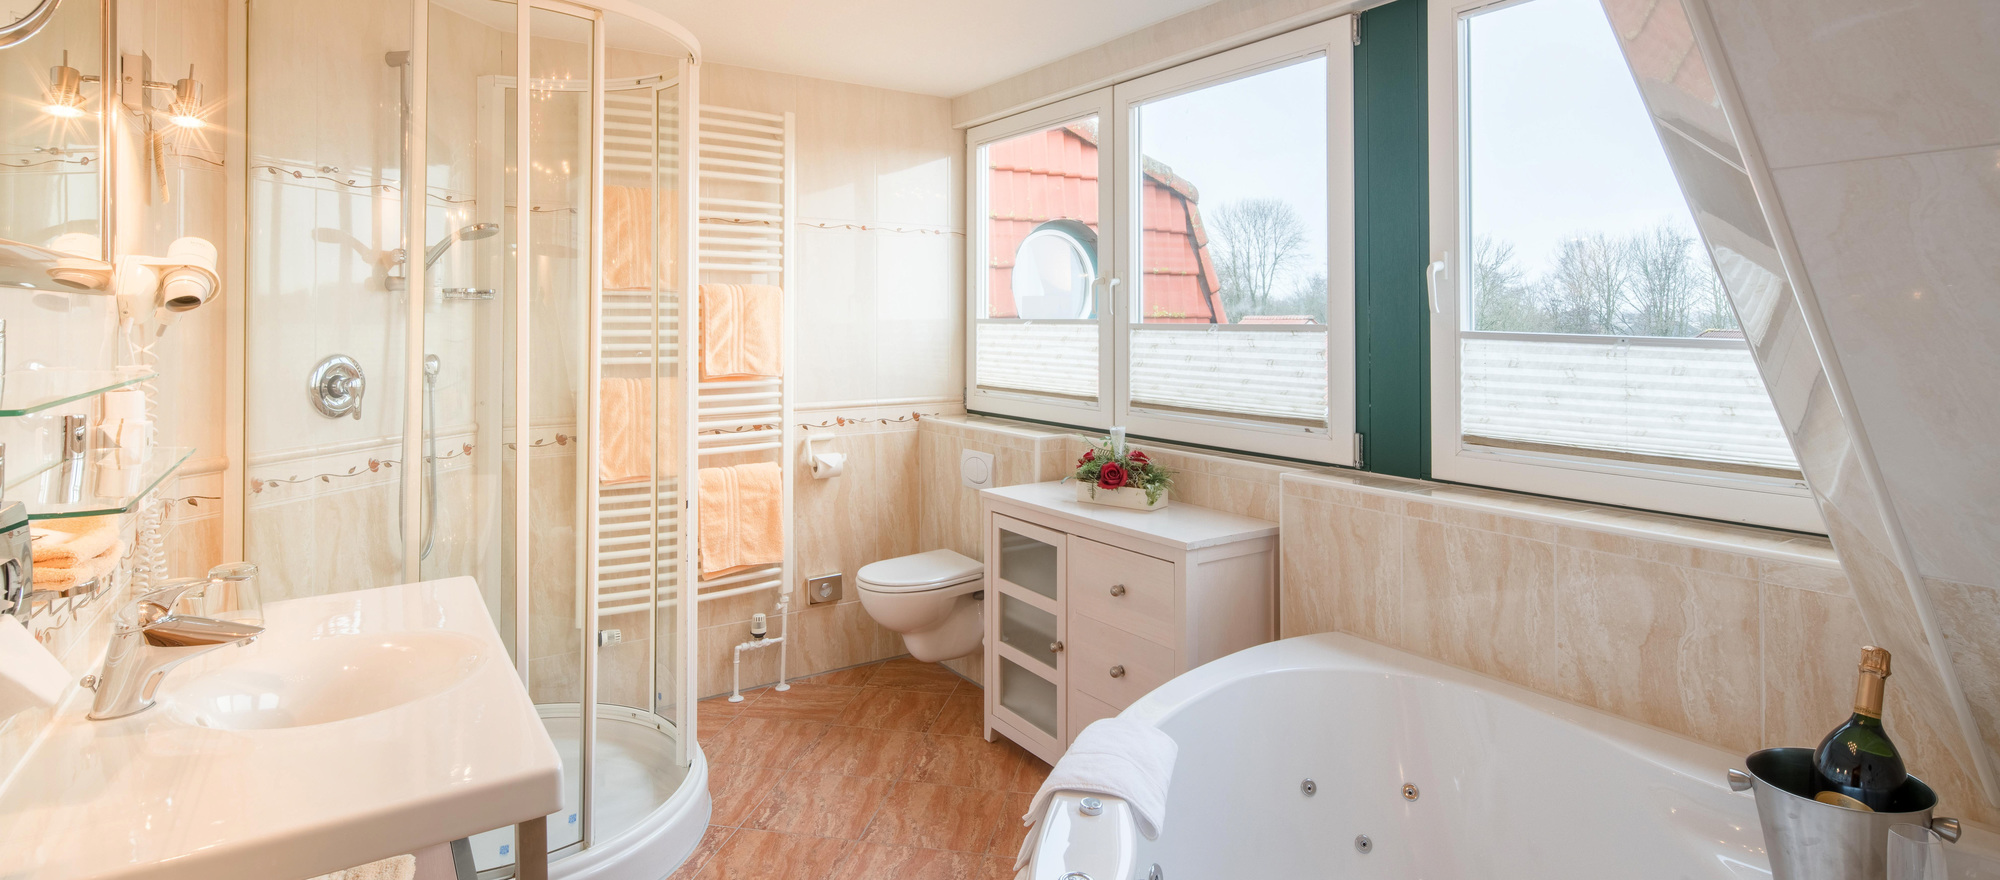 Modern and spacious bathroom in the suite of the 4-star hotel Ringhotel Altes Zollhaus in Horumersiel